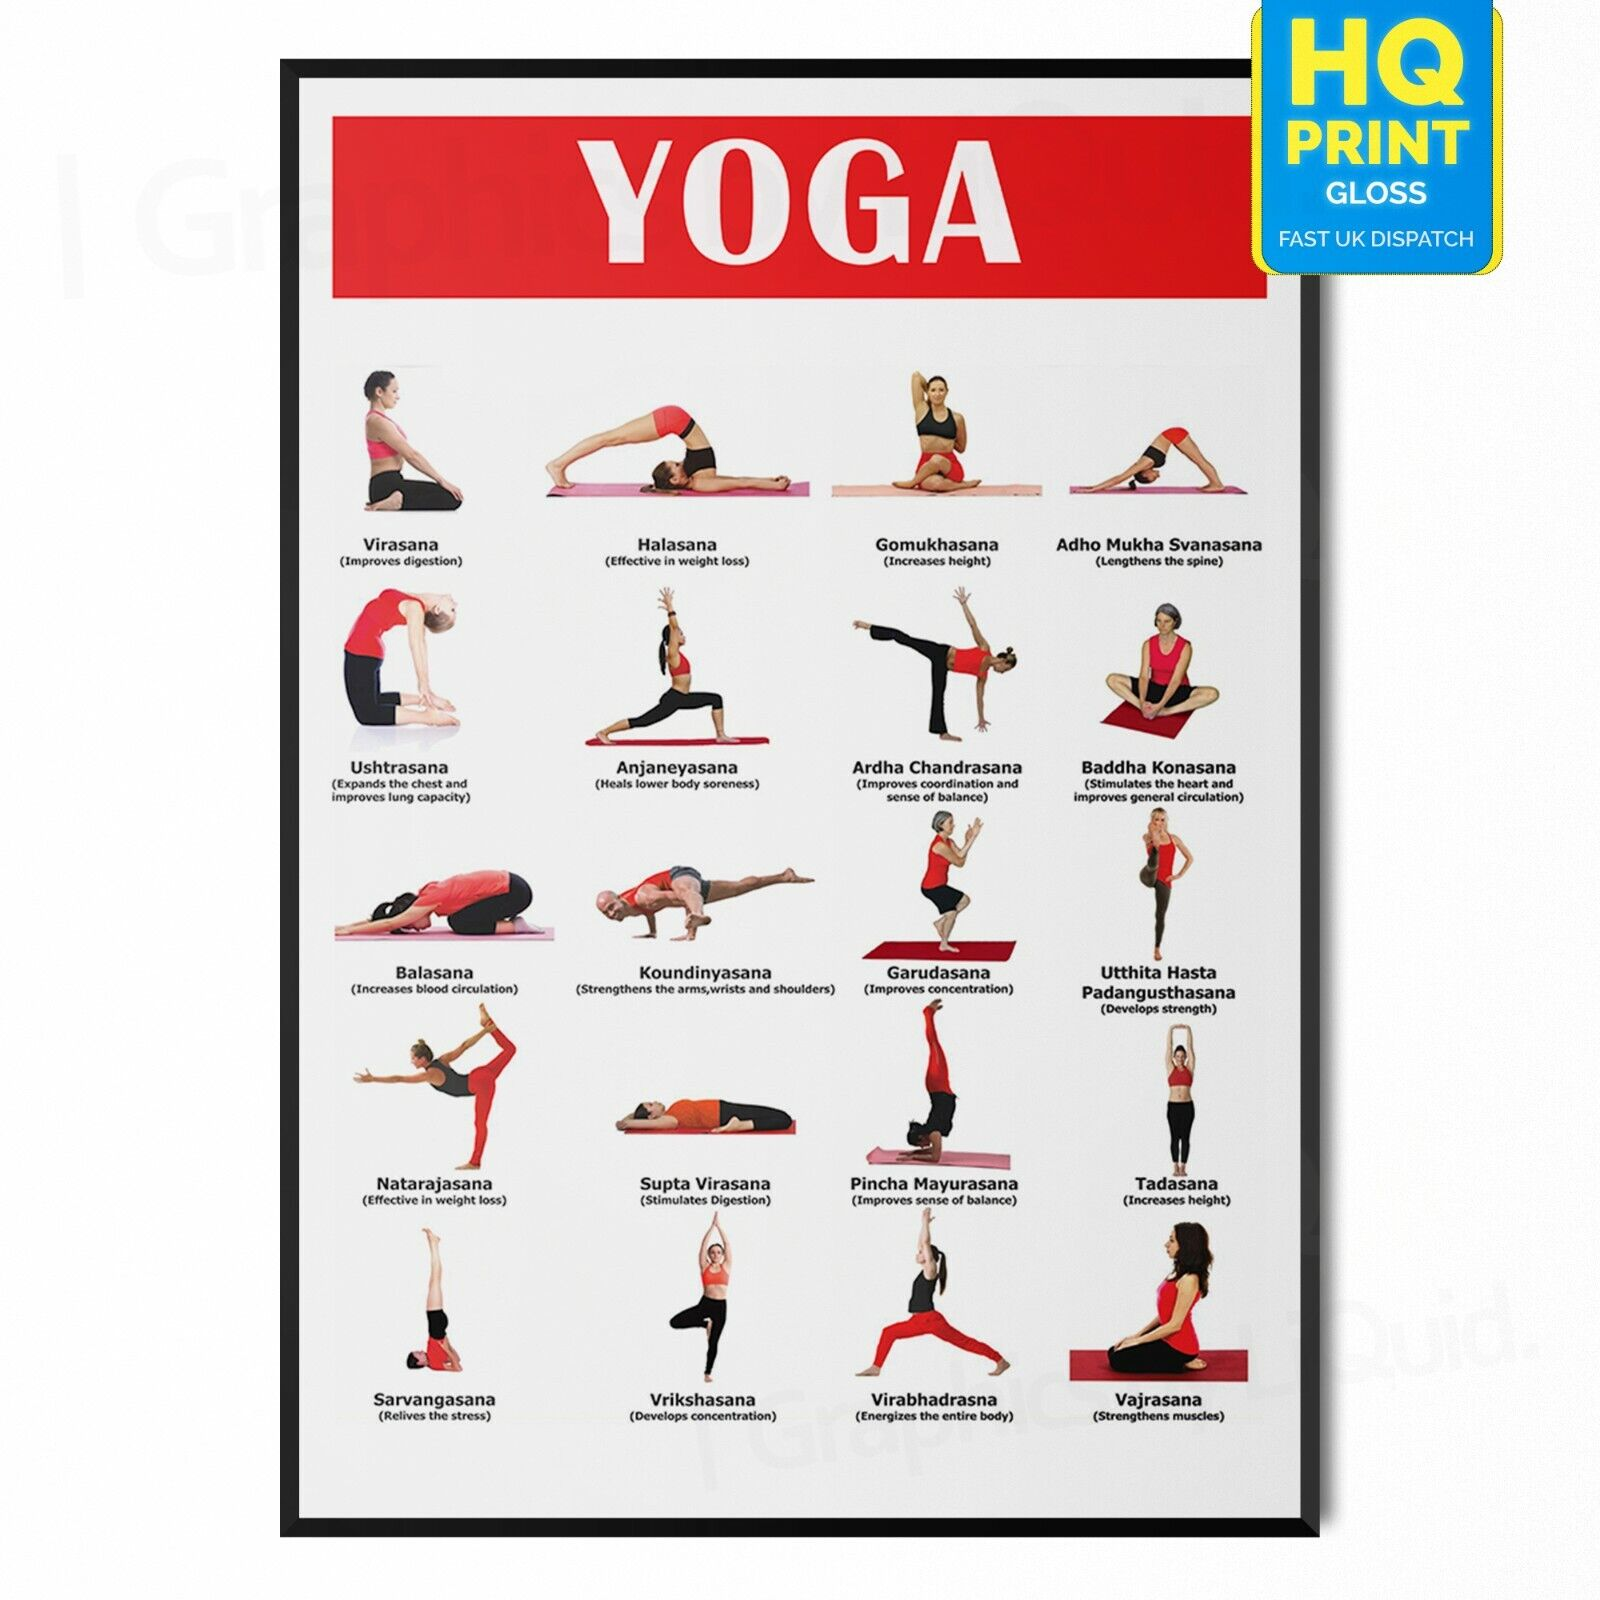 Details about YOGA POSES CHART POSTER POSTURES Wall Art Print Gift FITNESS  CHART